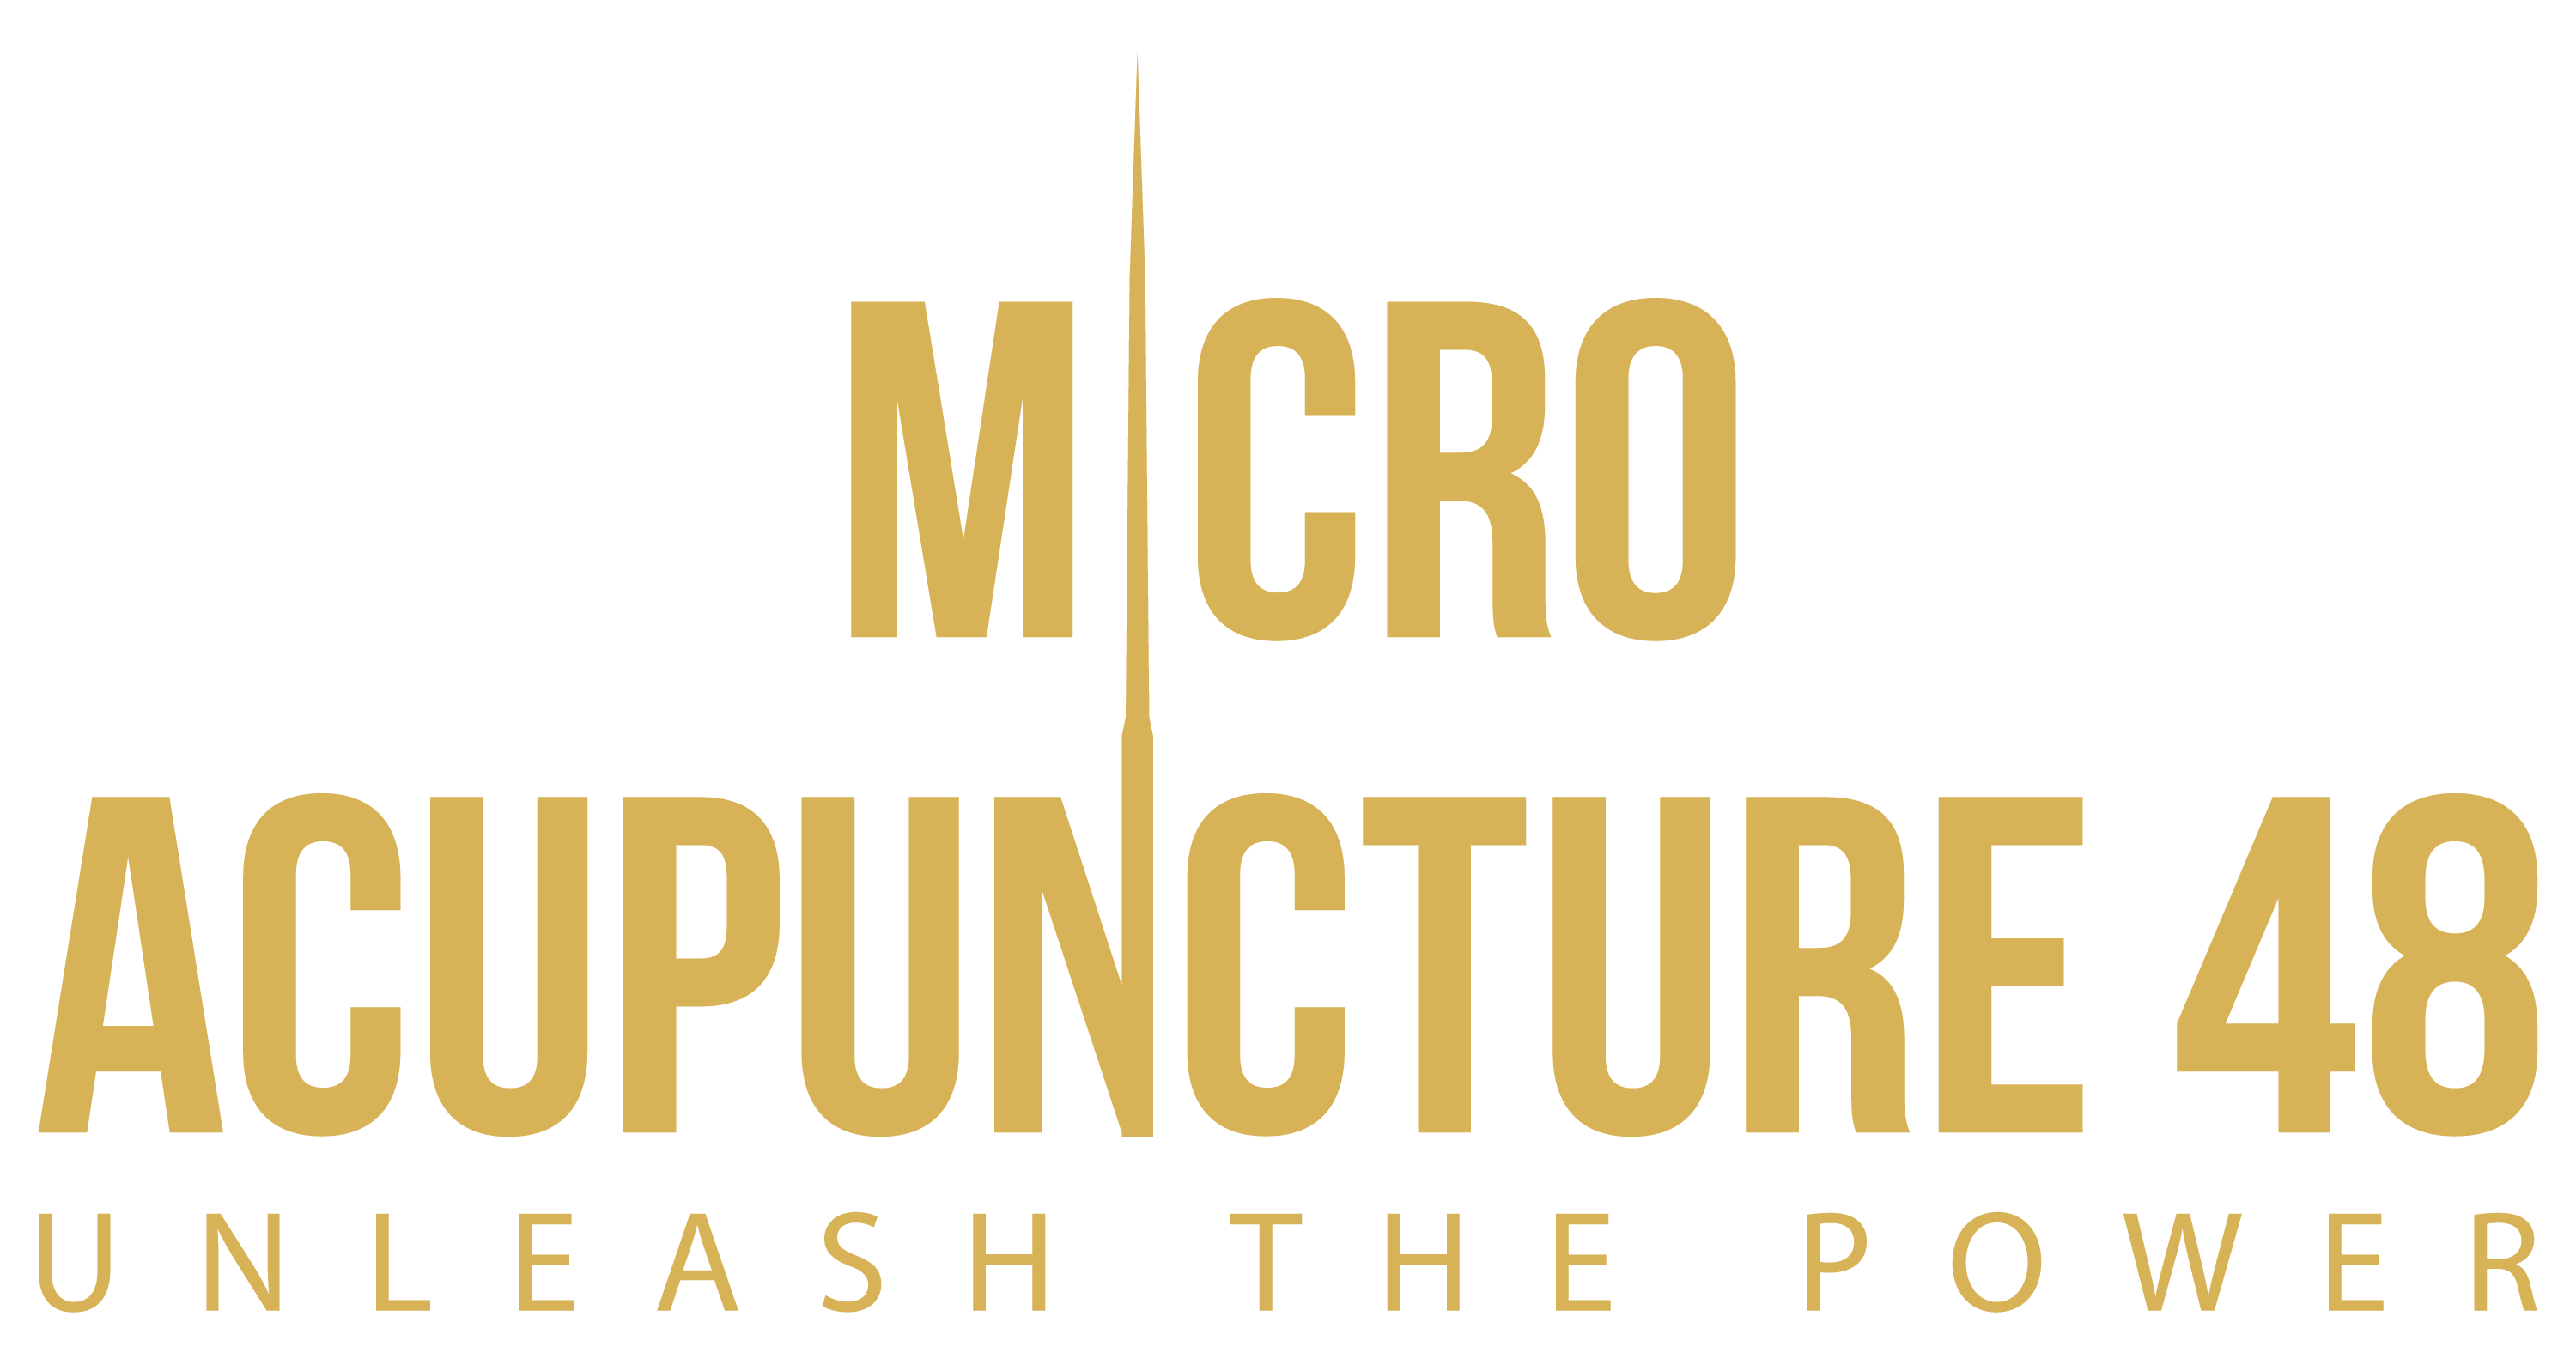 Micro Acupuncture 48 certification: Unleash the Power